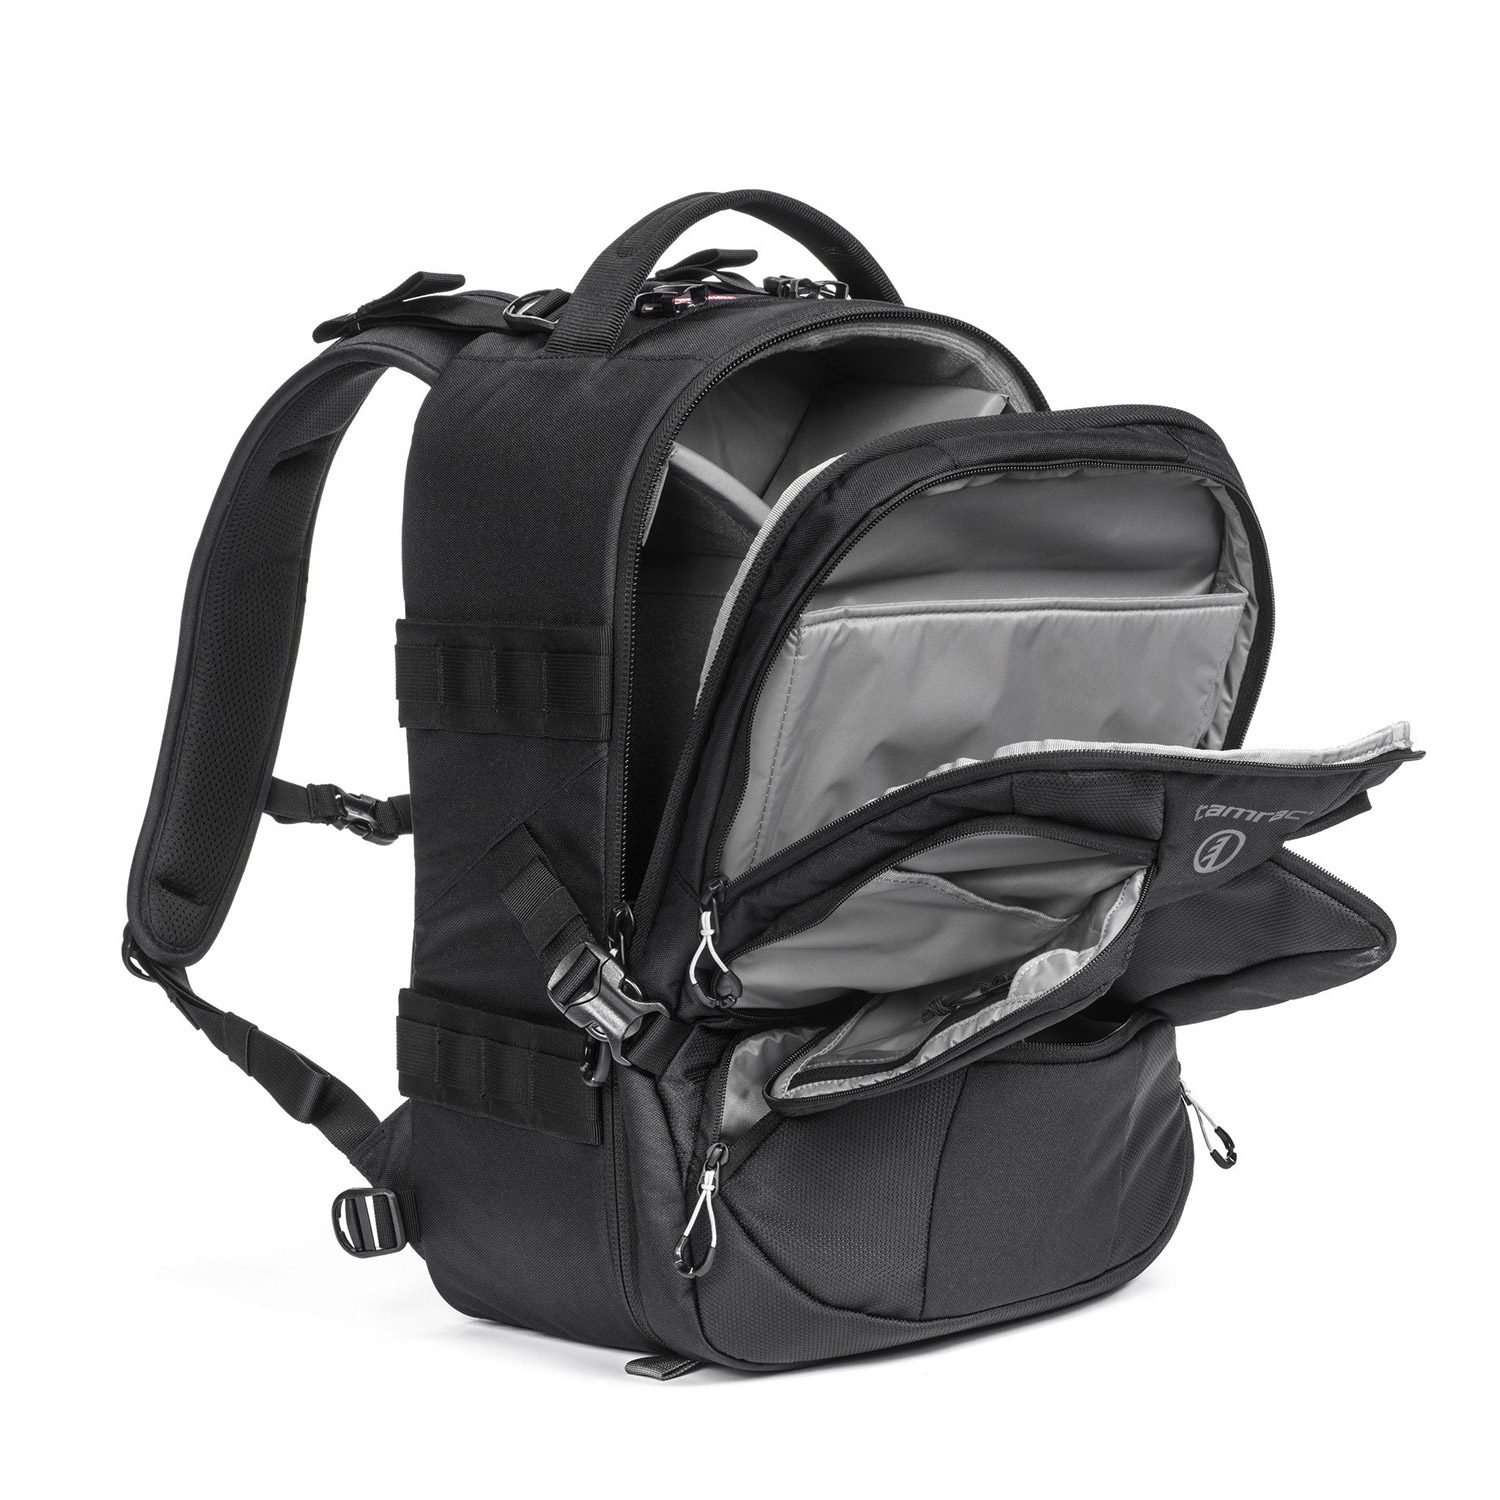 Review Tamrac Anvil Pro Series Backpacks 10